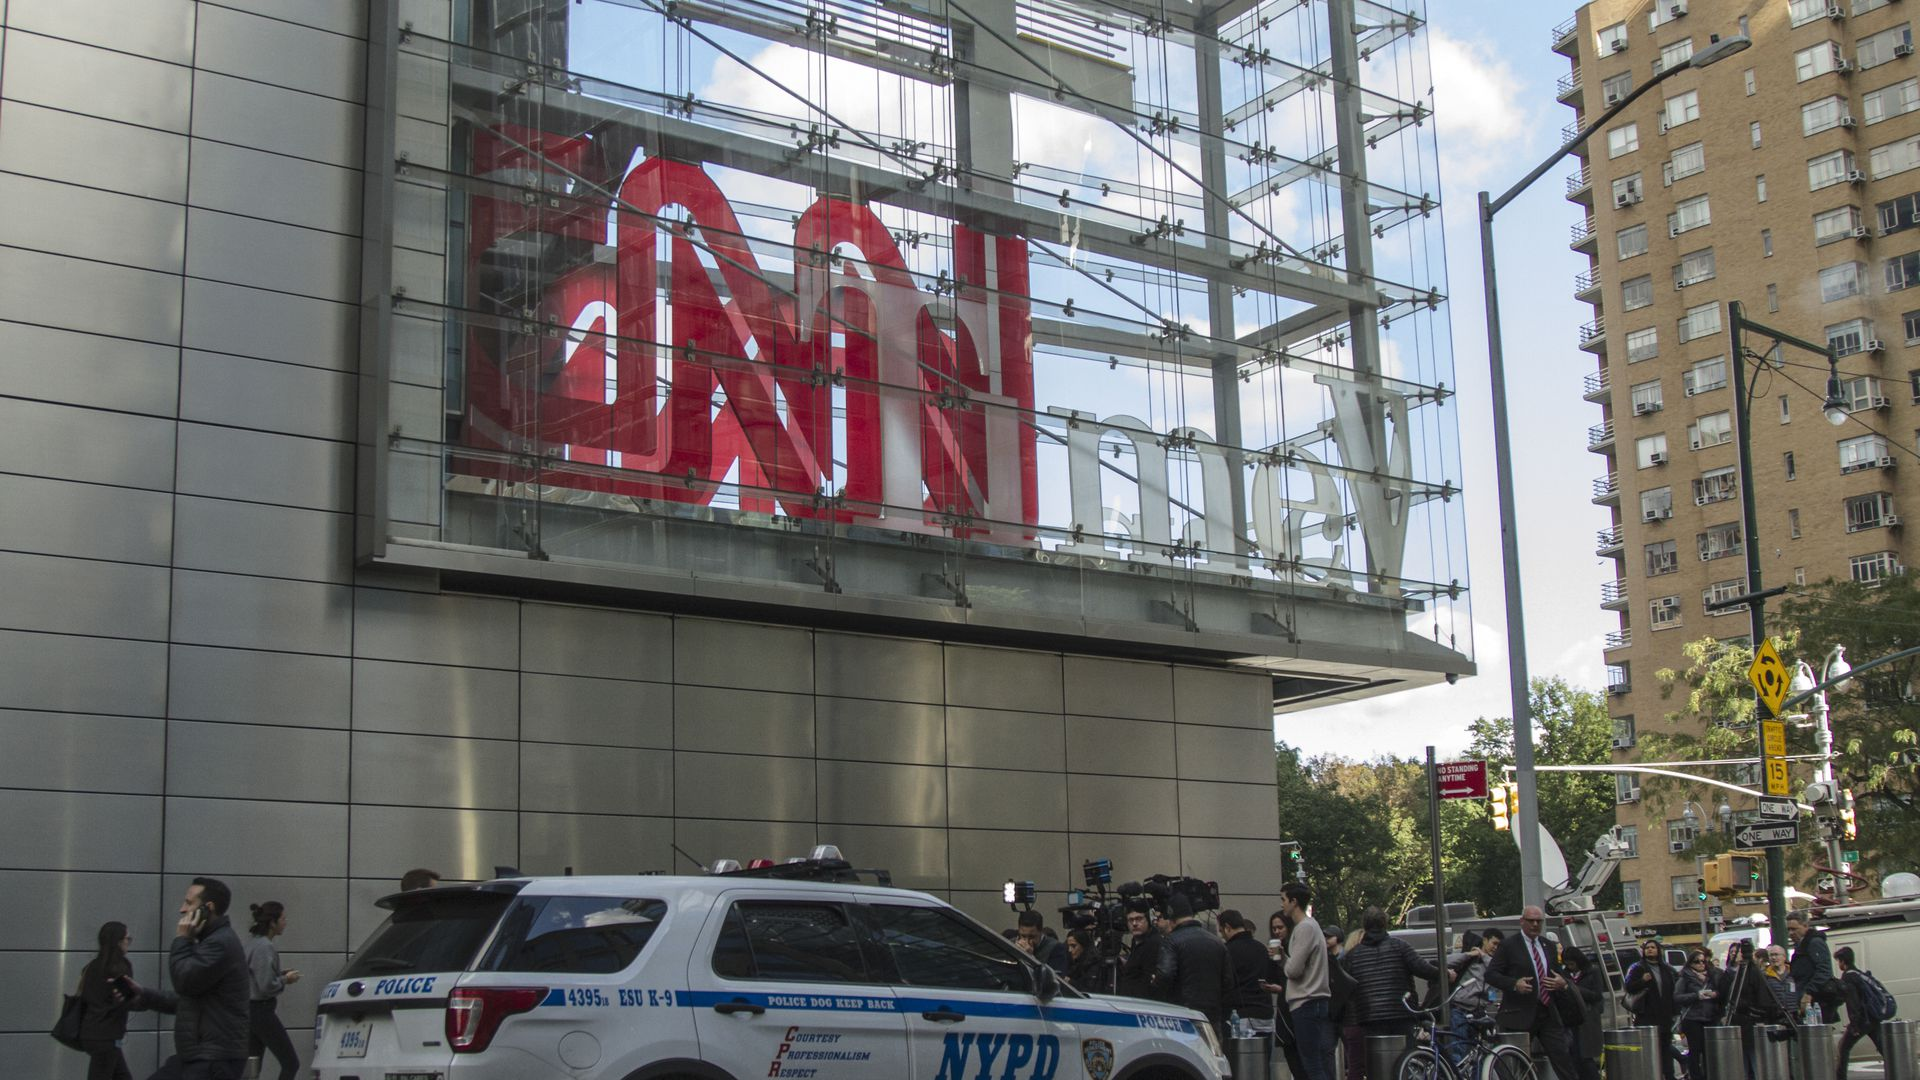 CNN center in New York.